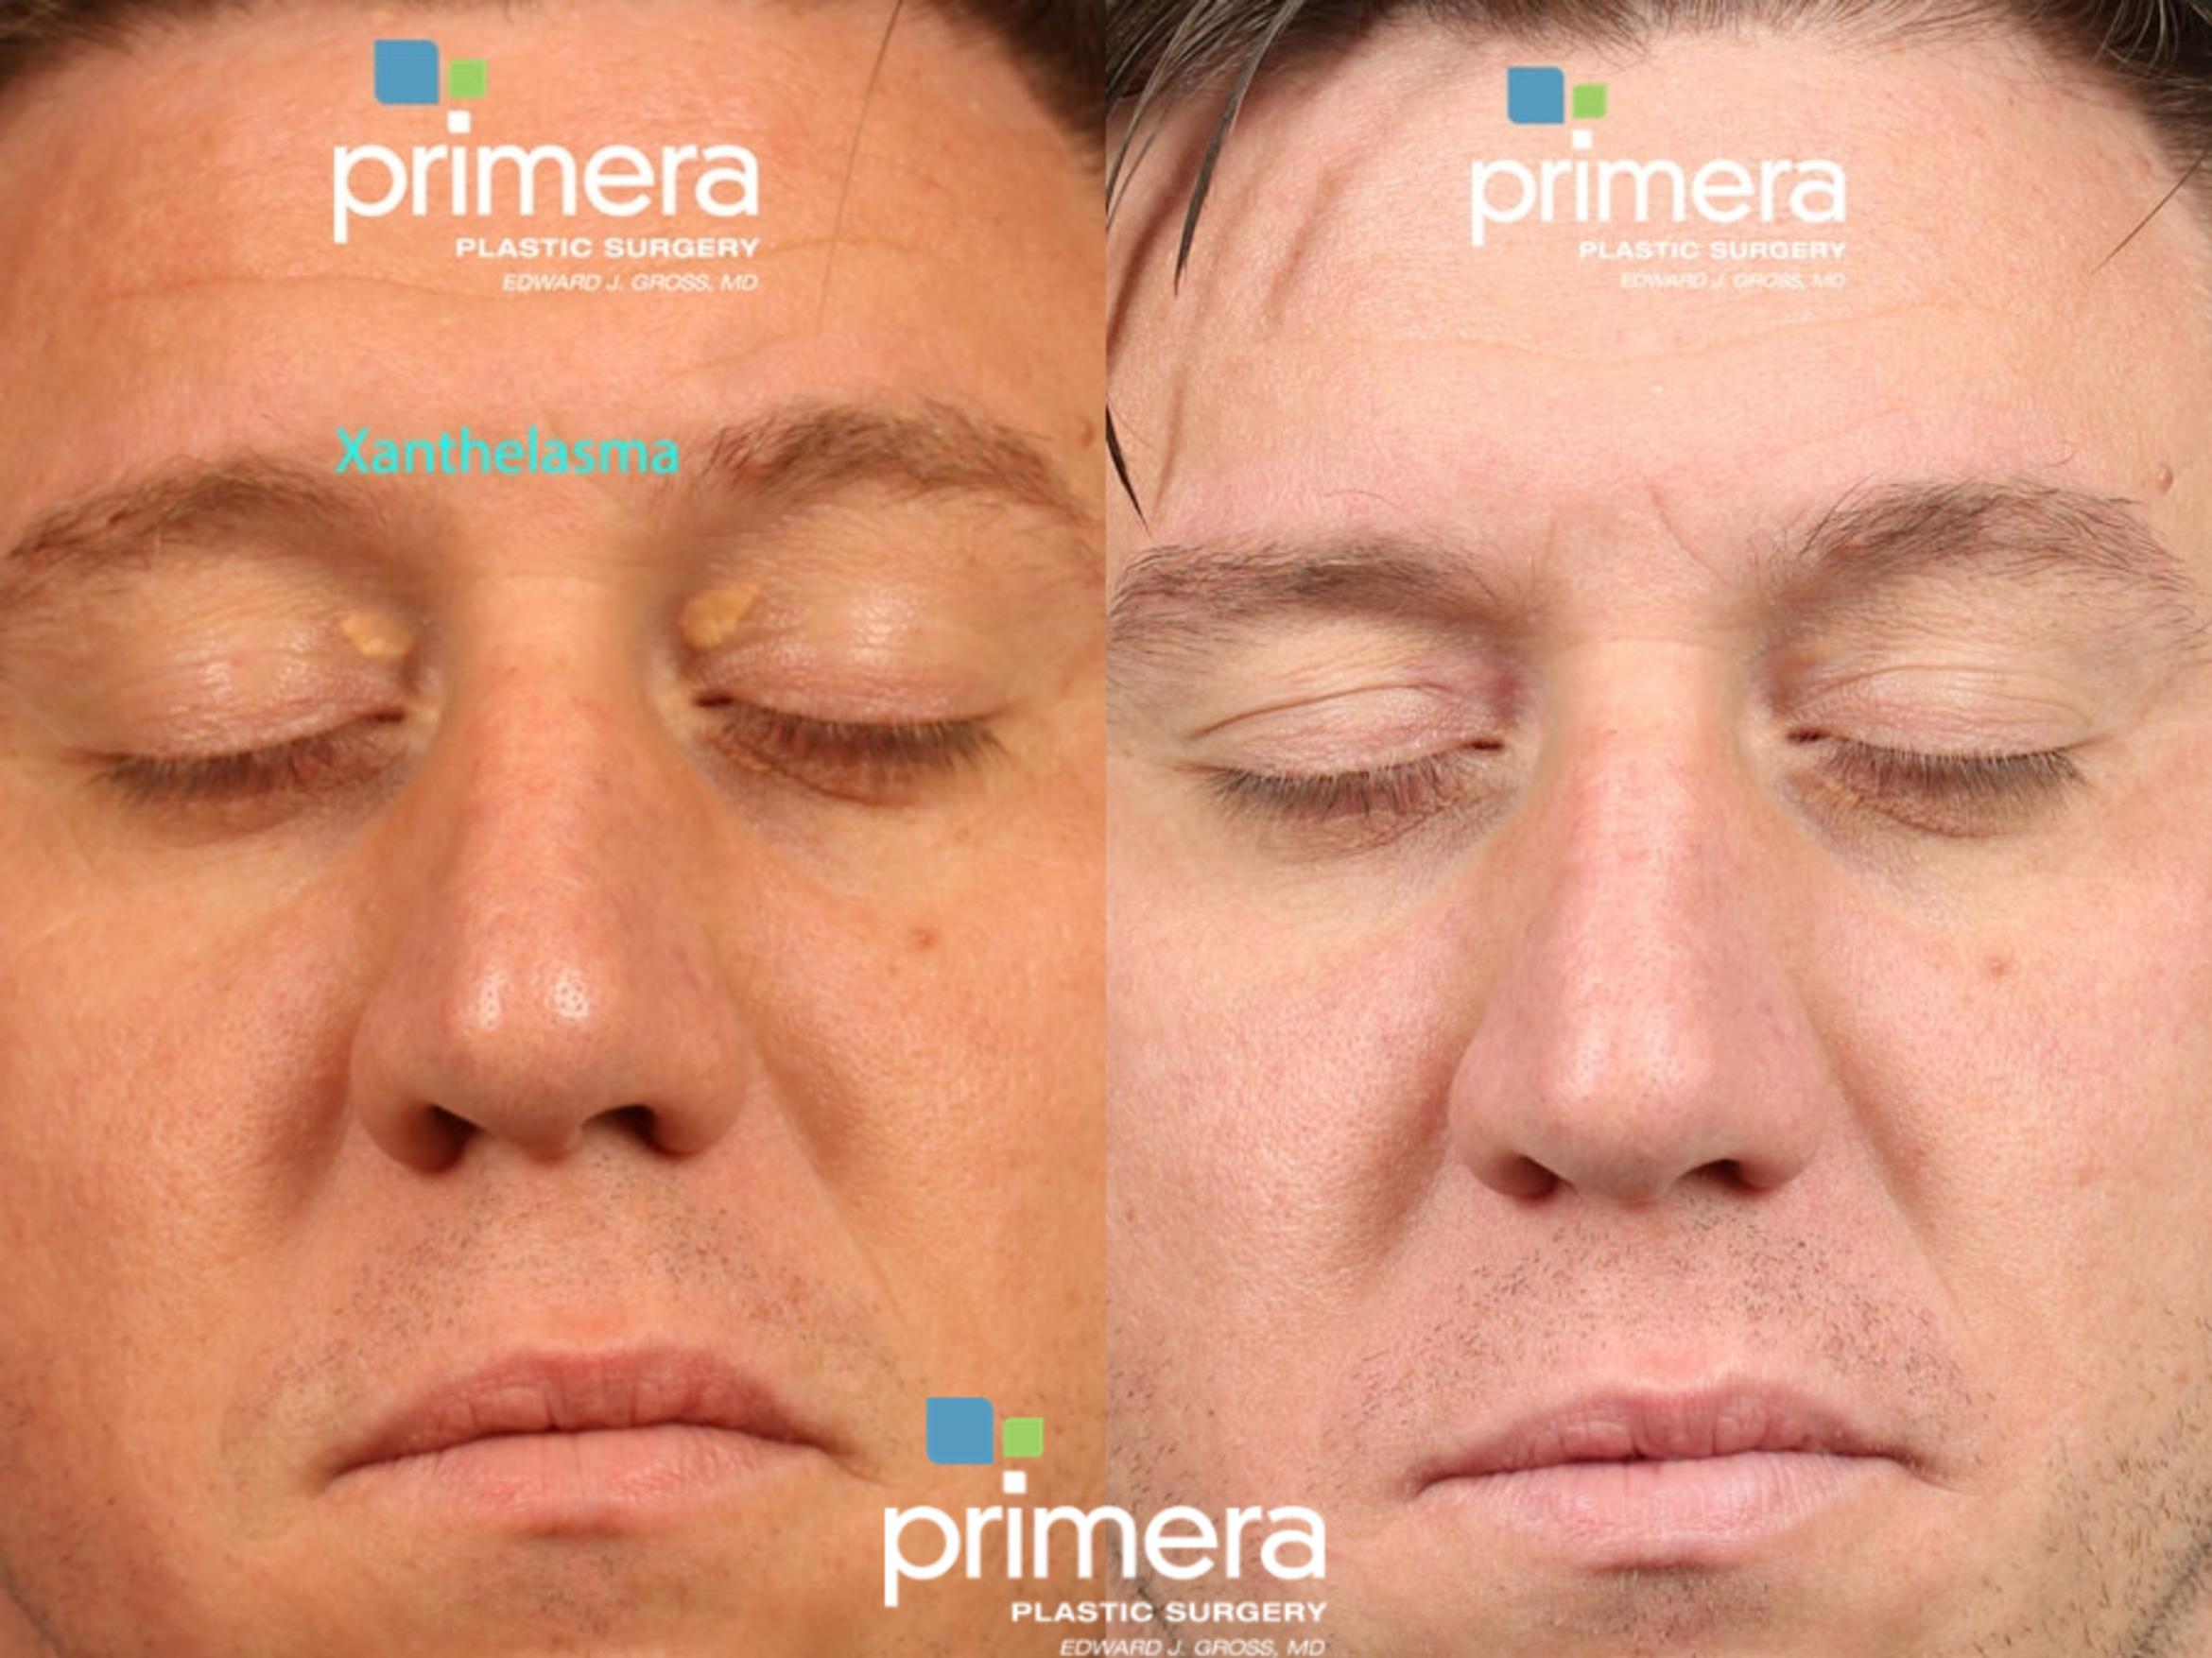 Skin Discoloration Treatment Before & After Photo | Orlando, Florida | Primera Plastic Surgery